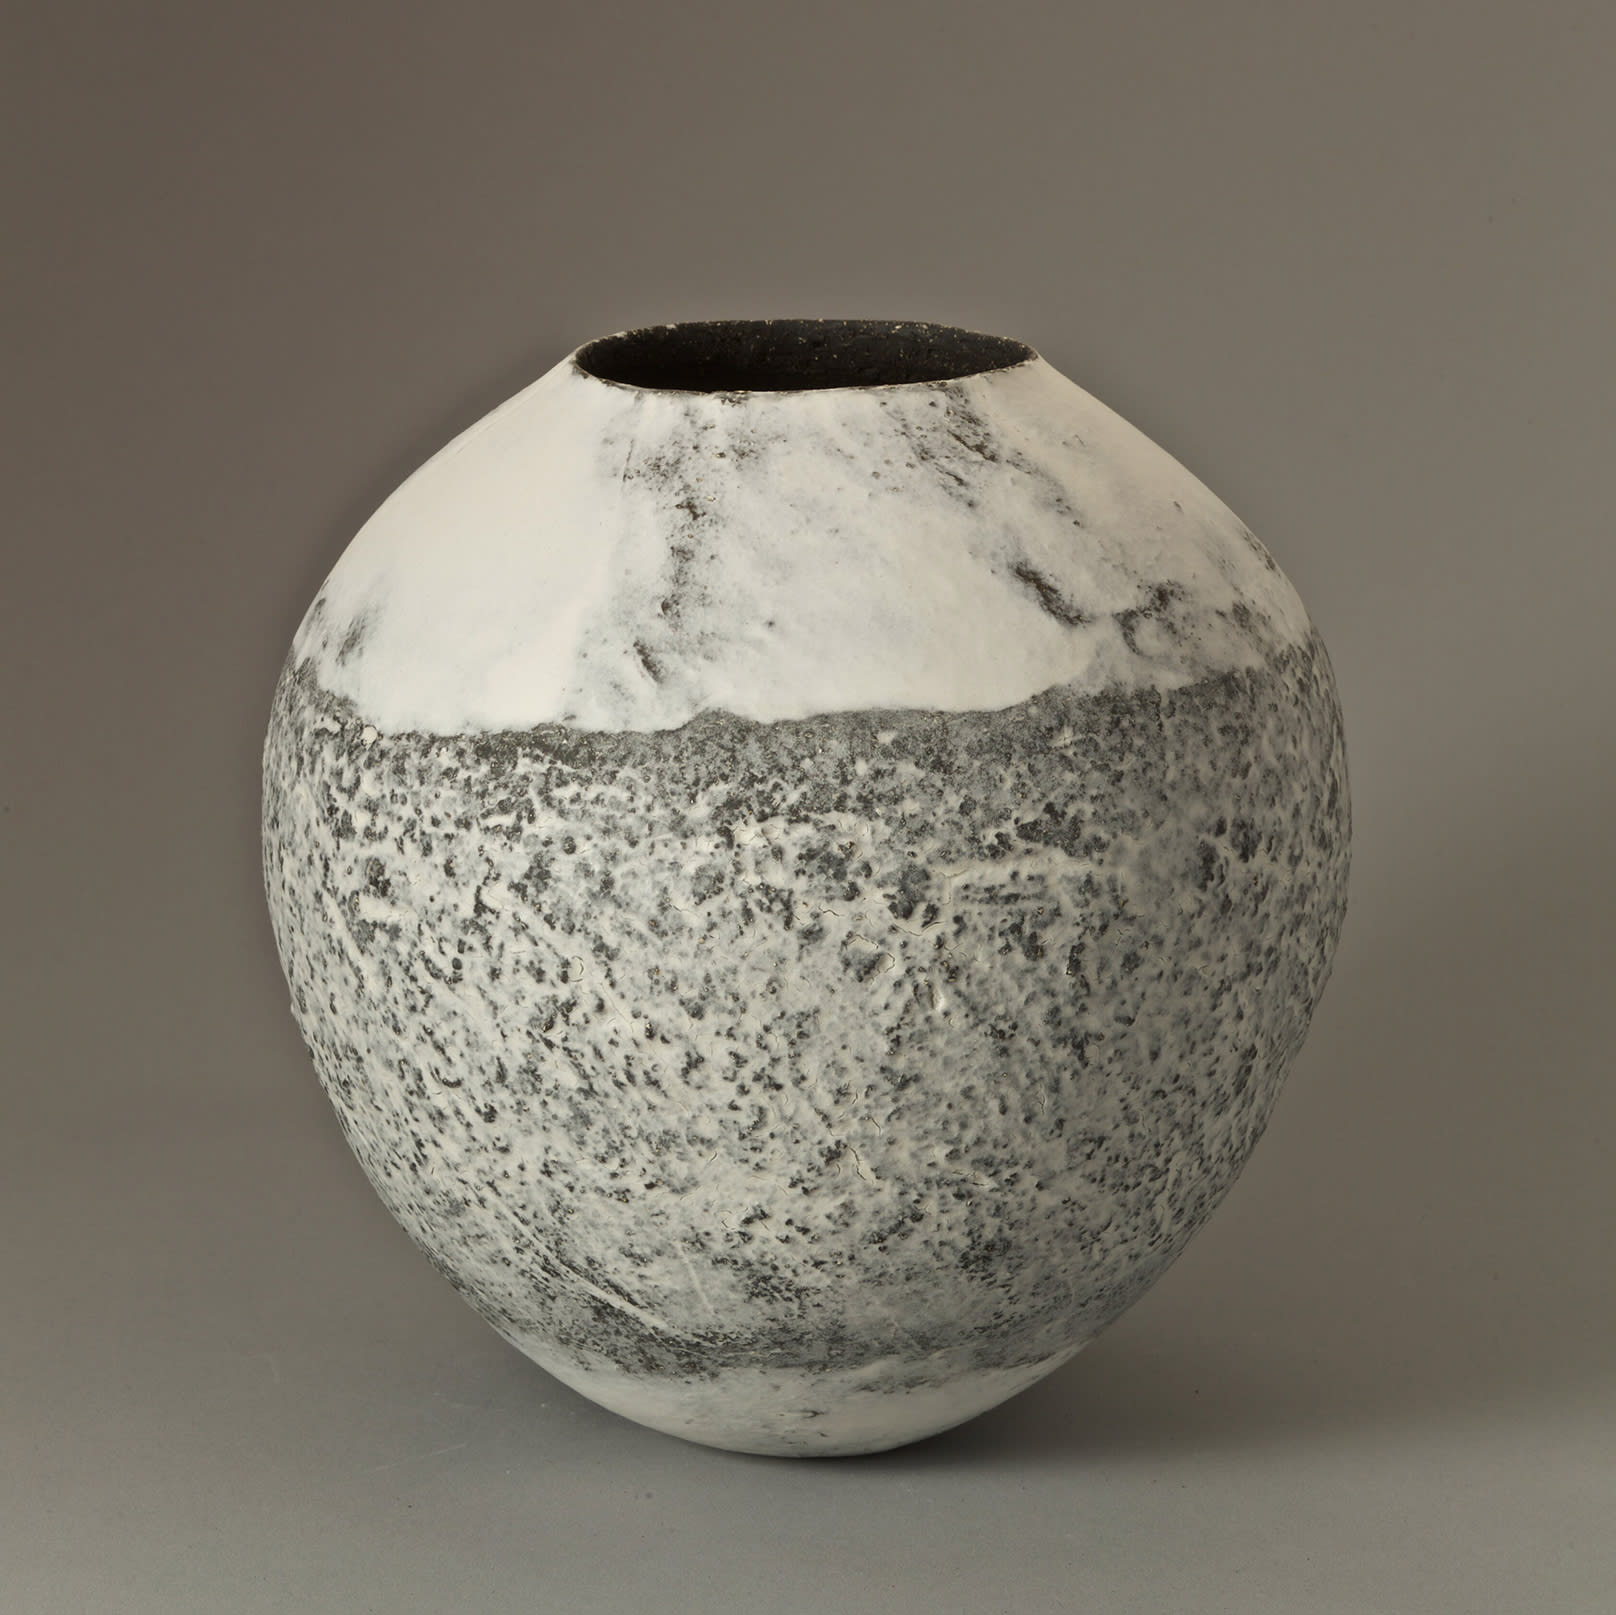 """<span class=""""link fancybox-details-link""""><a href=""""/content/feature/35/artworks7968/"""">View Detail Page</a></span><div class=""""signed_and_dated"""">signed to the base</div> <div class=""""medium"""">handbuilt stoneware and porcelain, with porcelain slip</div> <div class=""""dimensions"""">h. 22.5 x dia. 22 cm</div>"""